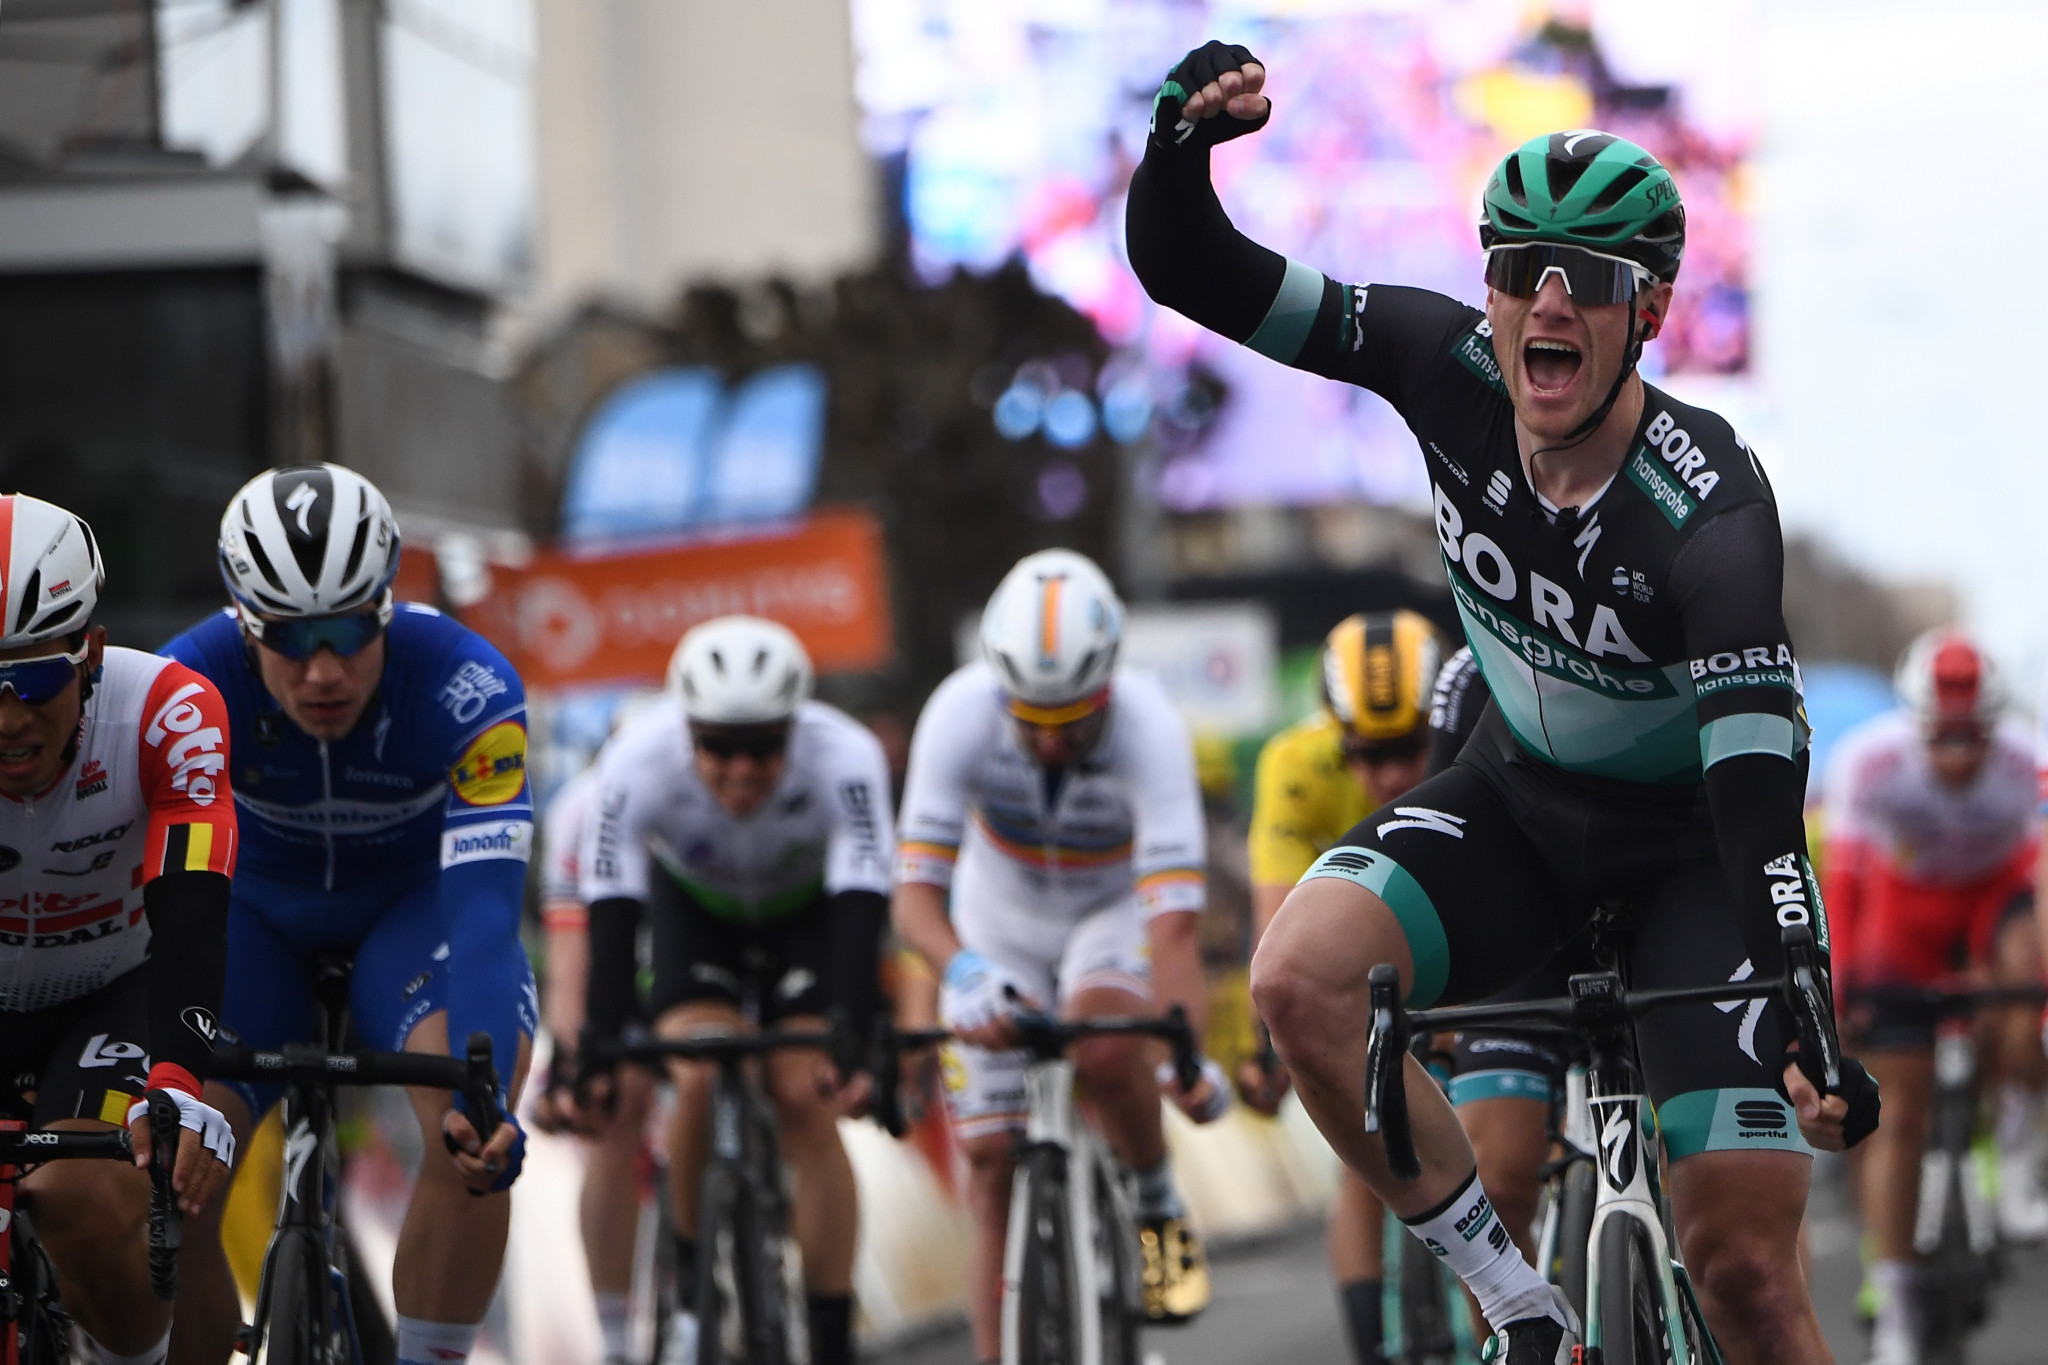 Ireland's Sam Bennett snatched his second stage win in Paris-Nice today after the one clinched two years ago in Chalon-sur-Saone ©Getty Images